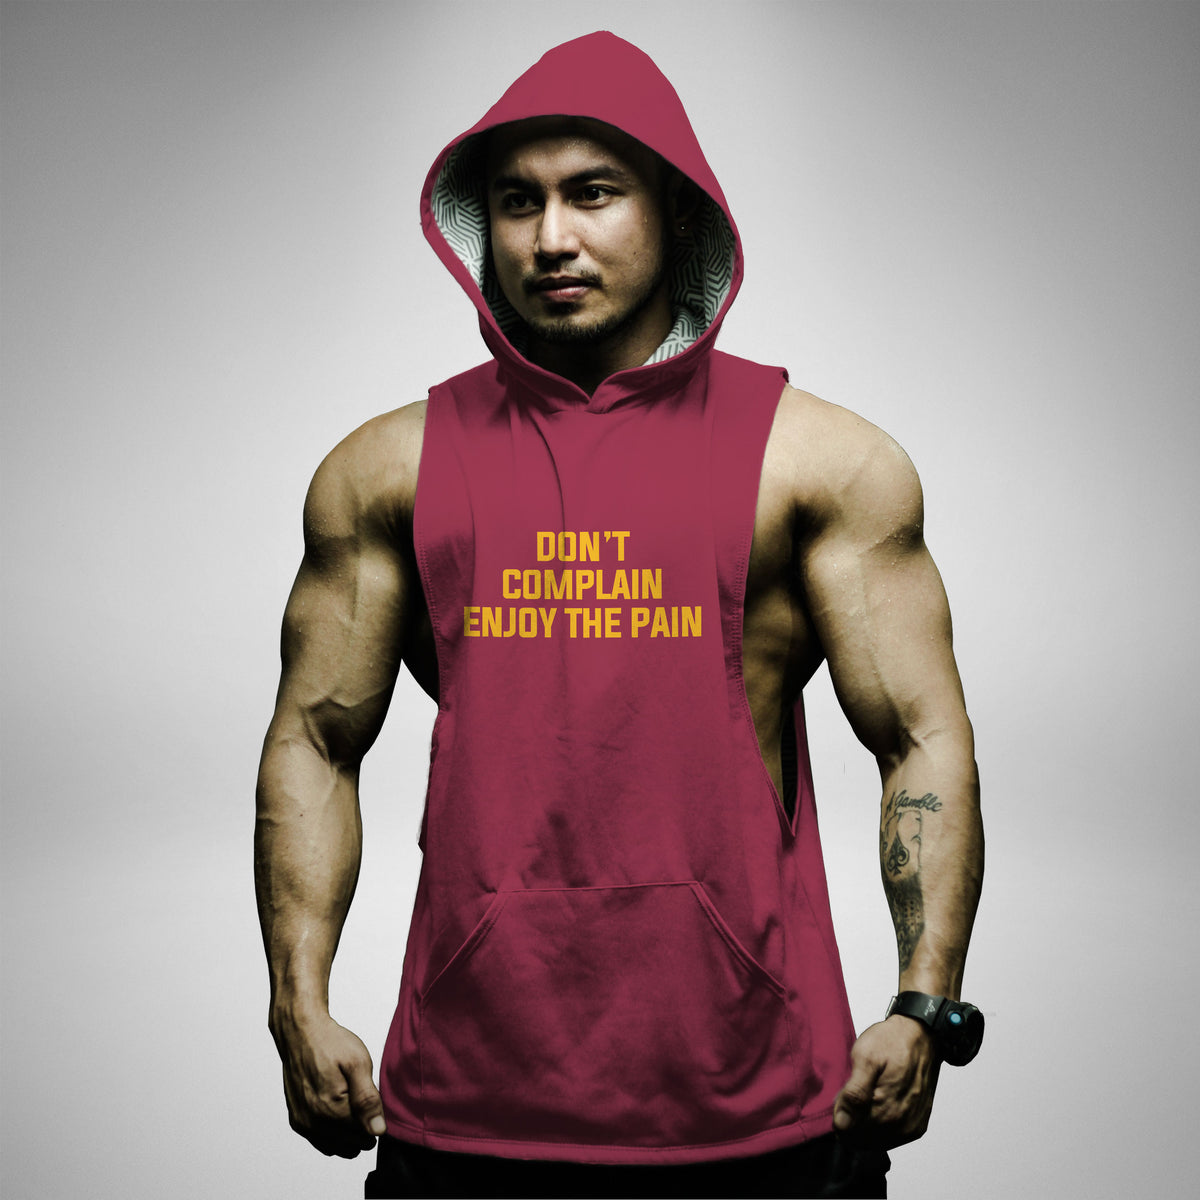 AH134 Don't Complain Enjoy The Pain Sleeveless Hoodie